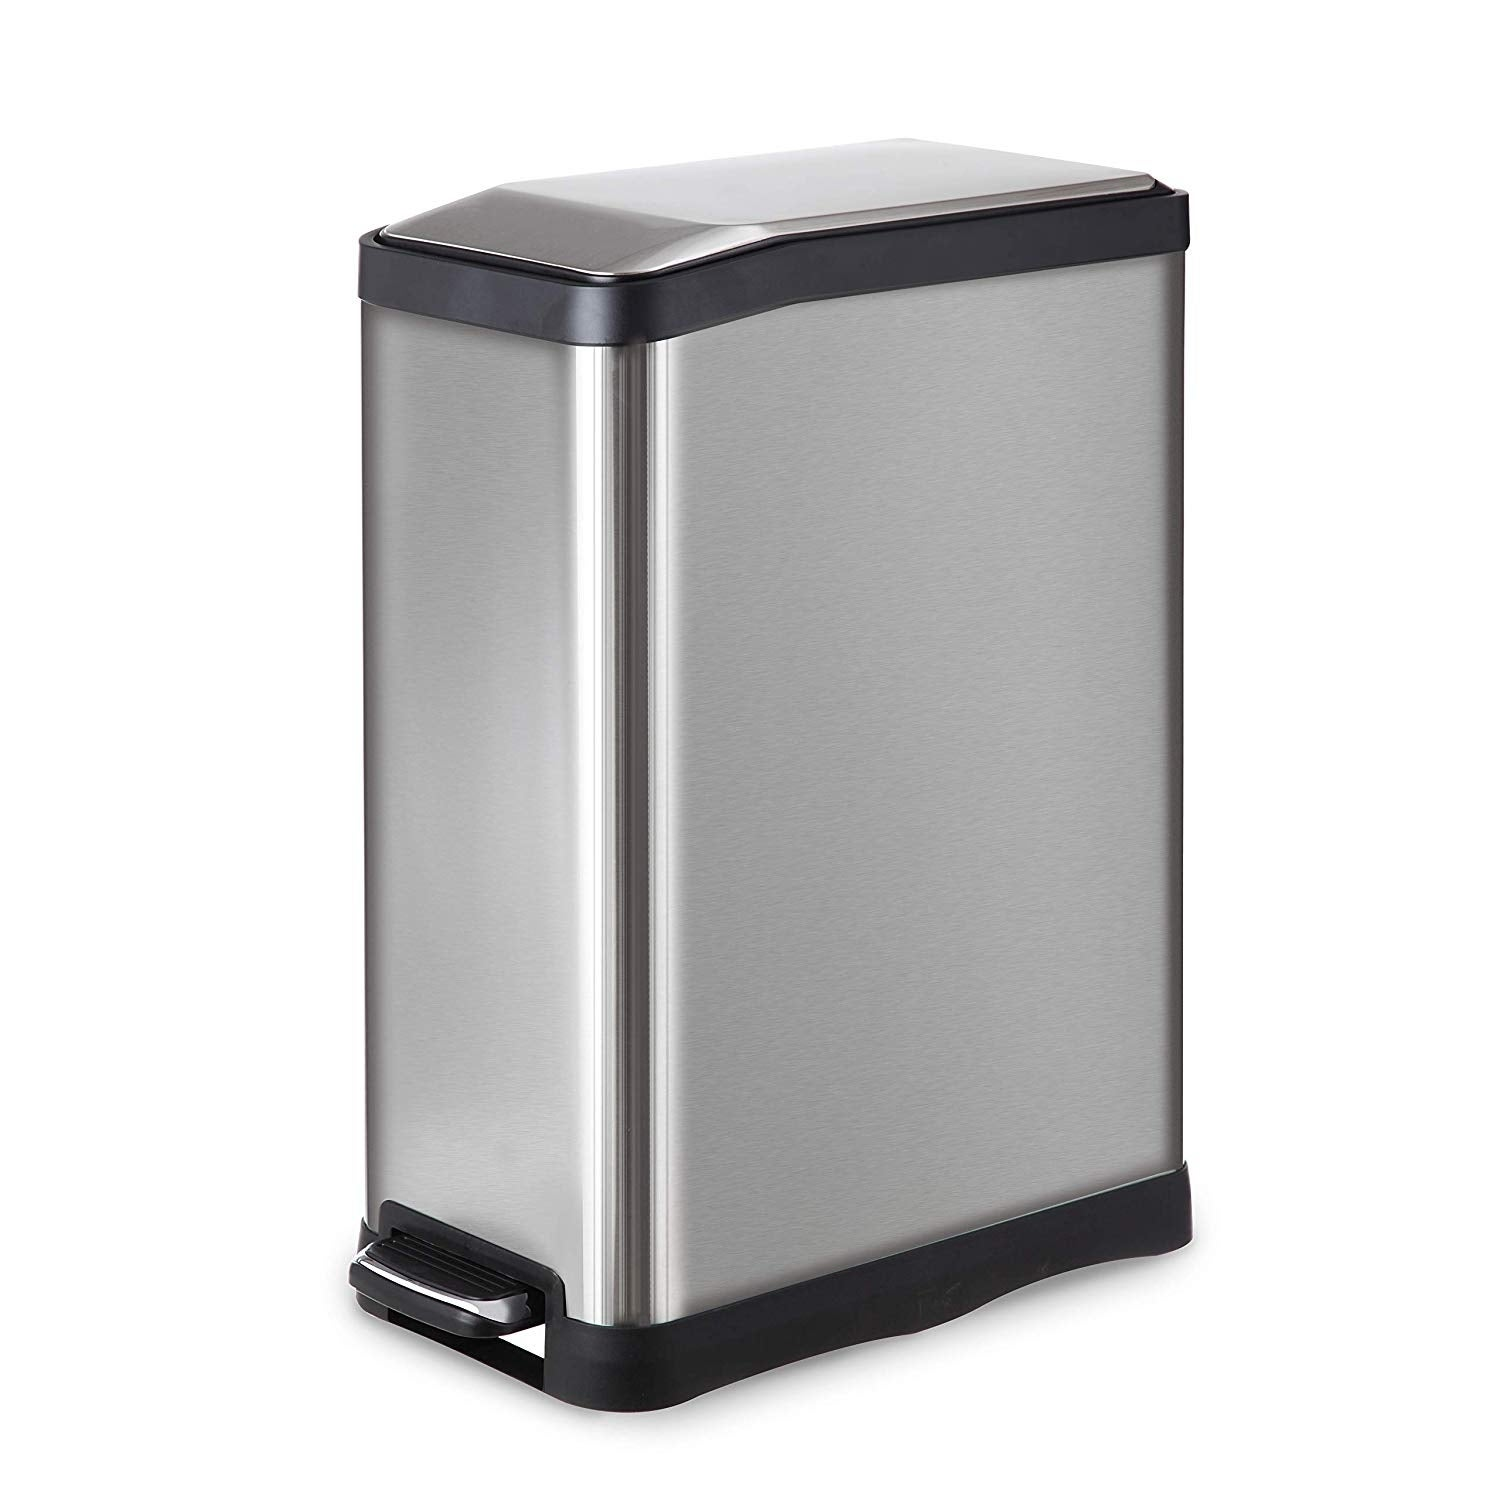 Buy Stainless Steel Kitchen Trash Cans Online At Overstock Our